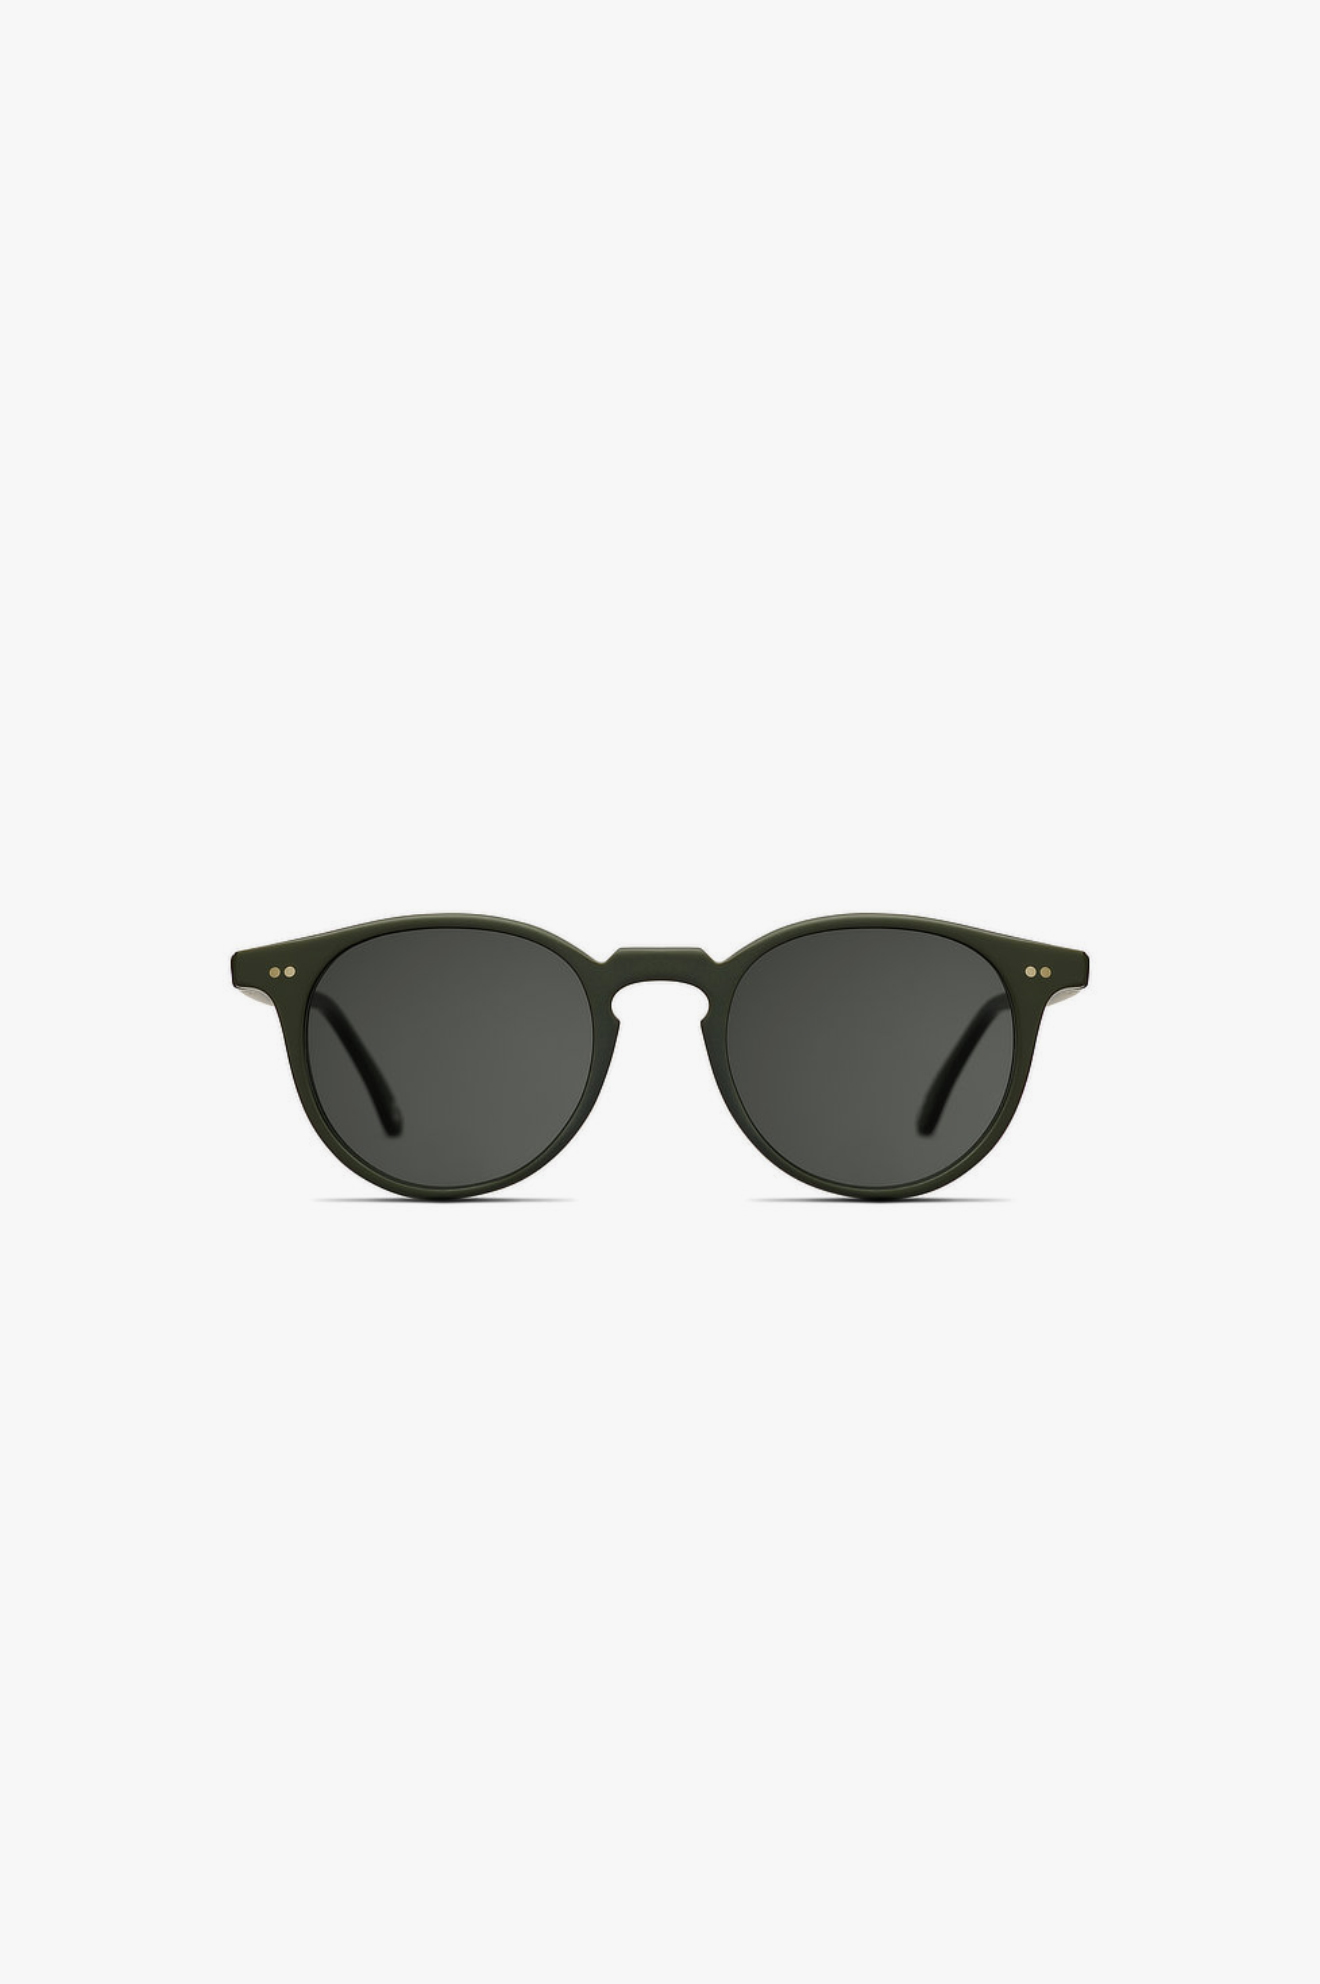 Cool Kid Sunglasses Army Green Mate